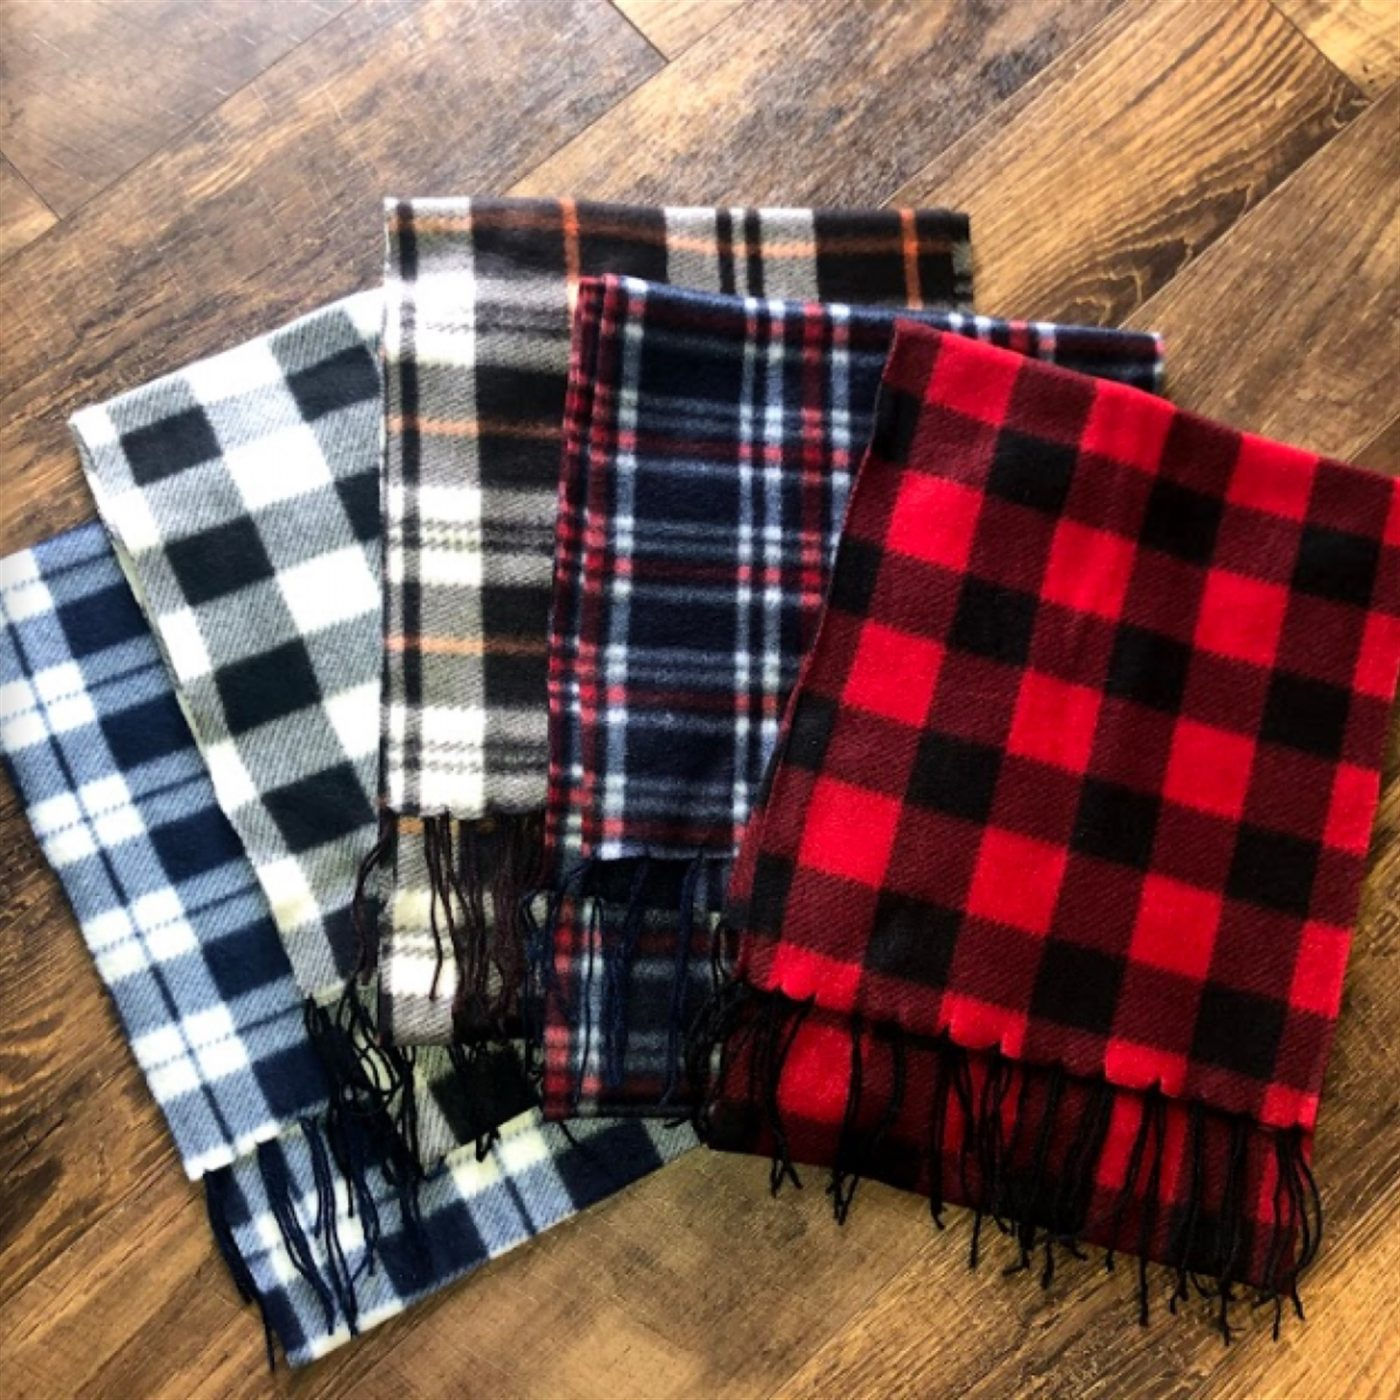 Was $19.99 - Now $9.99 - Fleece Winter Scarfs   Free Shipping (10/16 to 10/18)